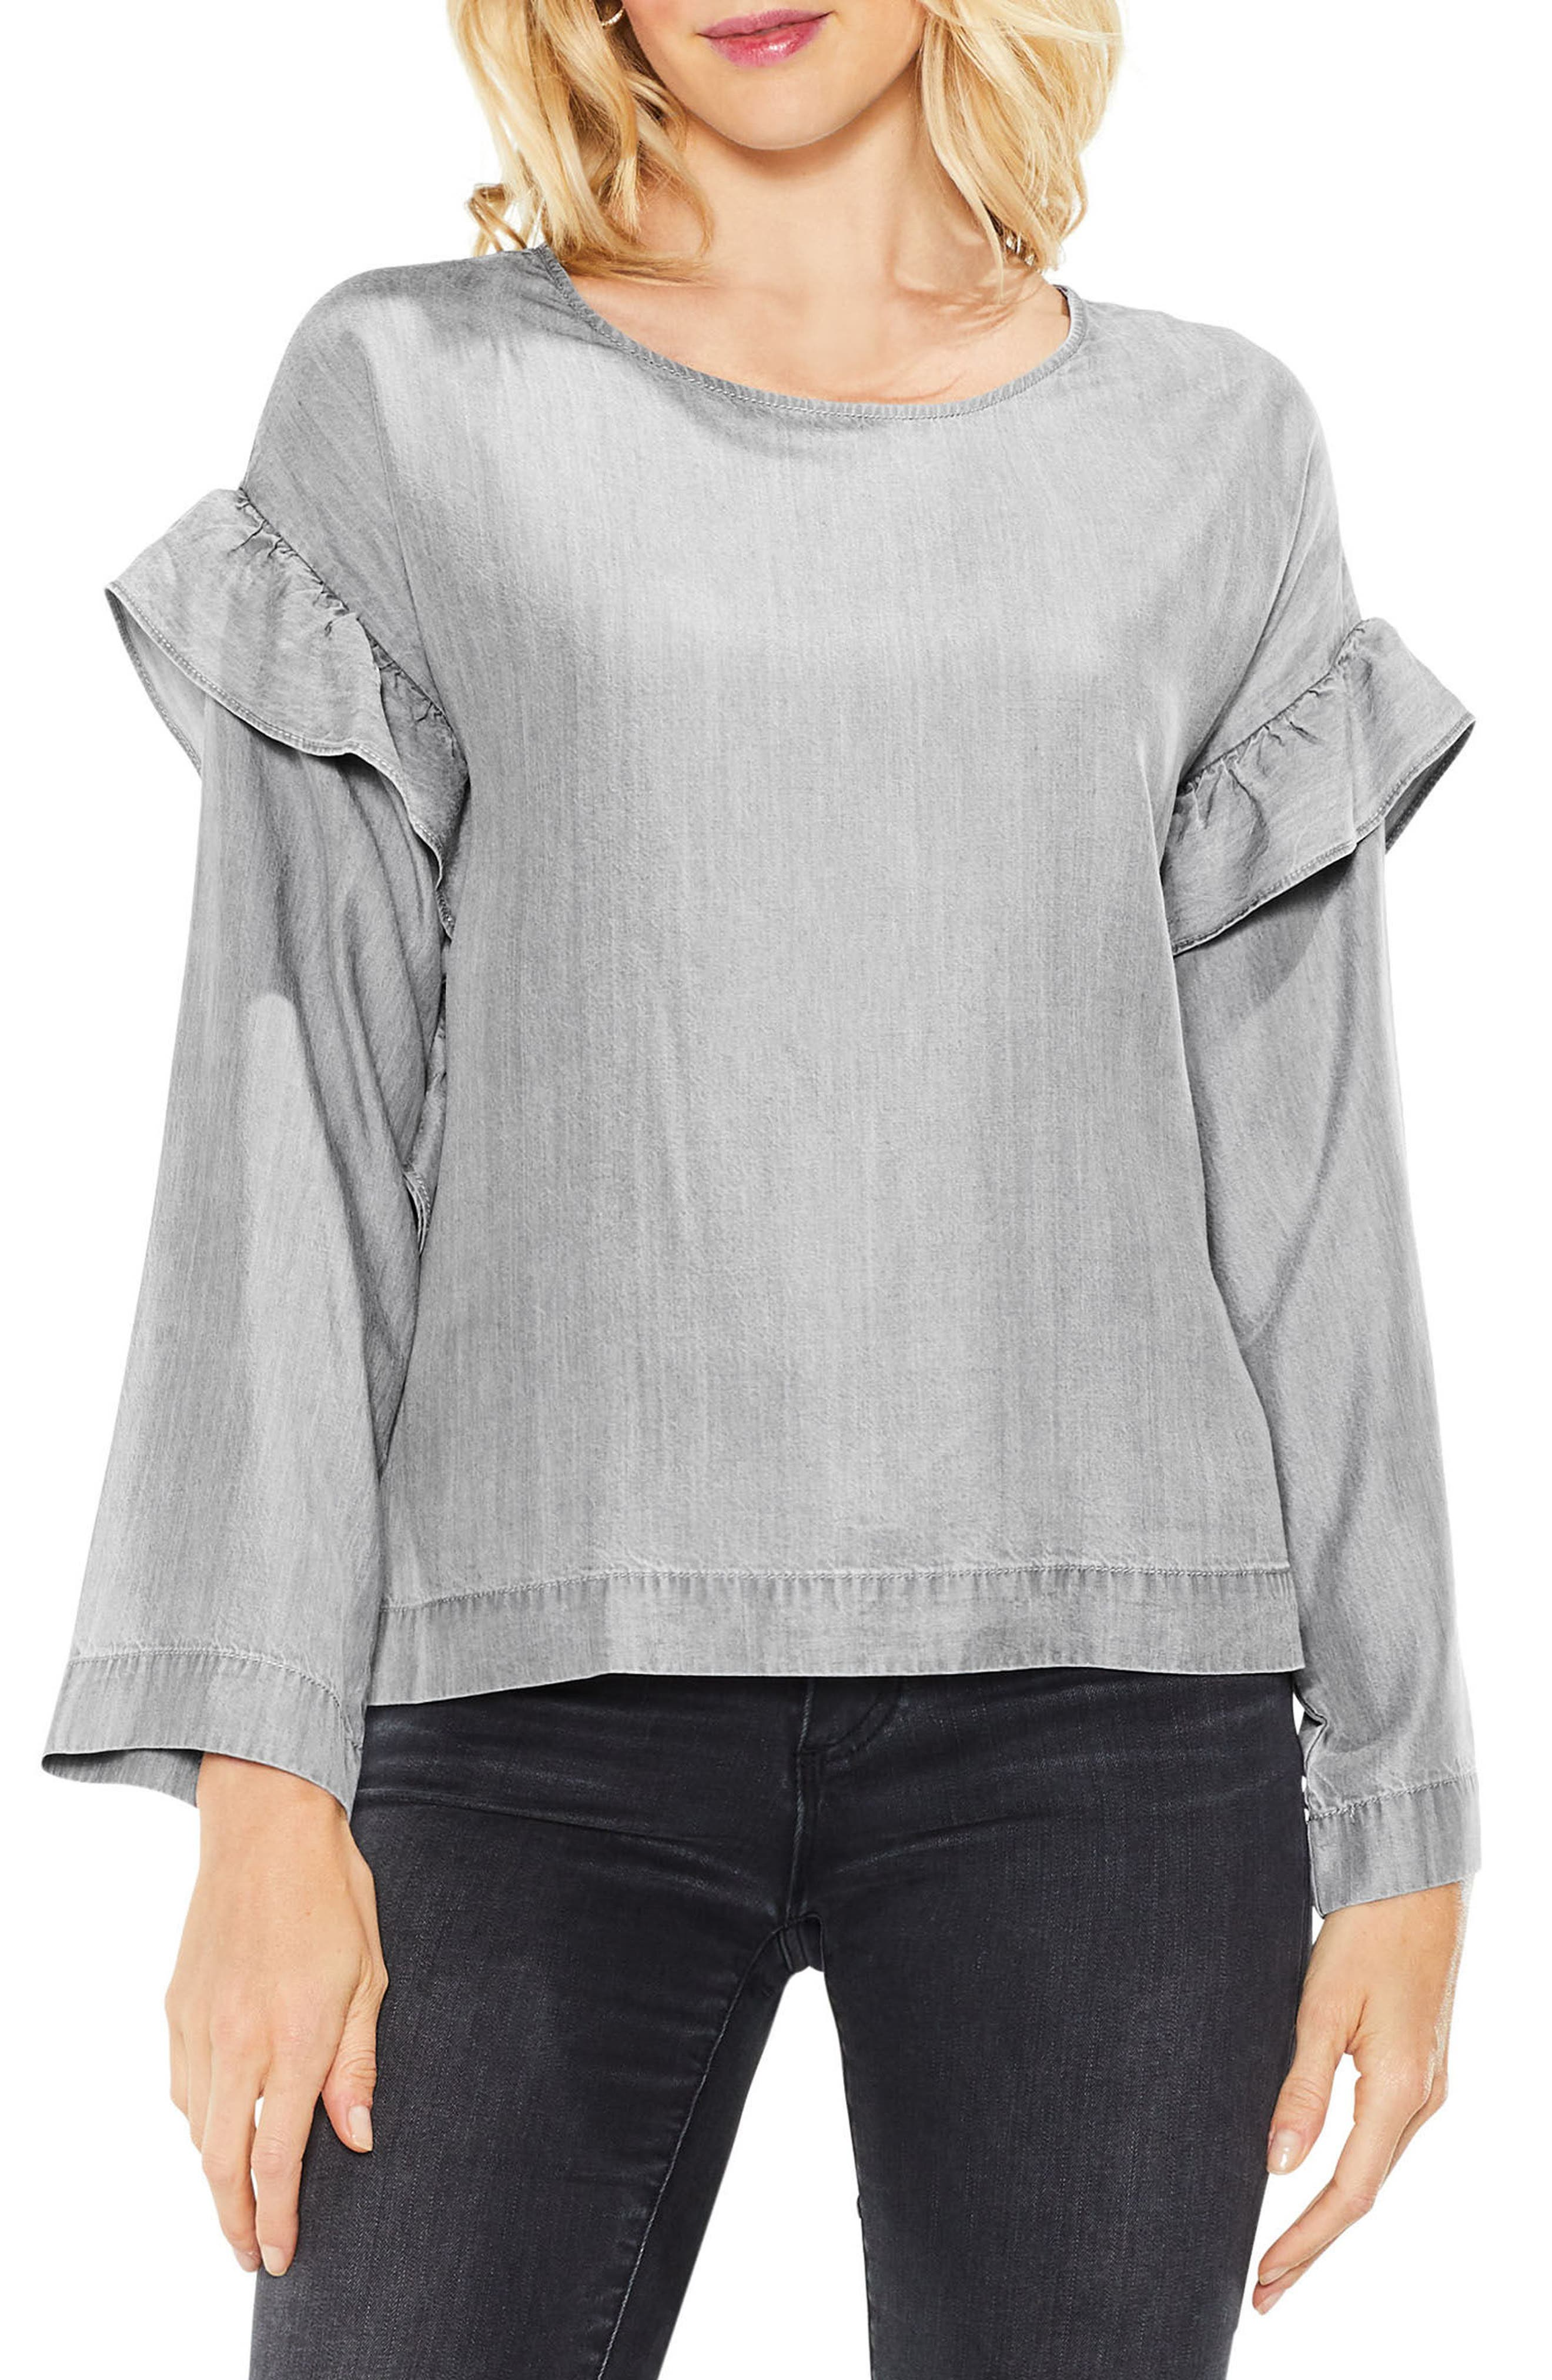 Alternate Image 1 Selected - Two by Vince Camuto Ruffle Shoulder Shirt